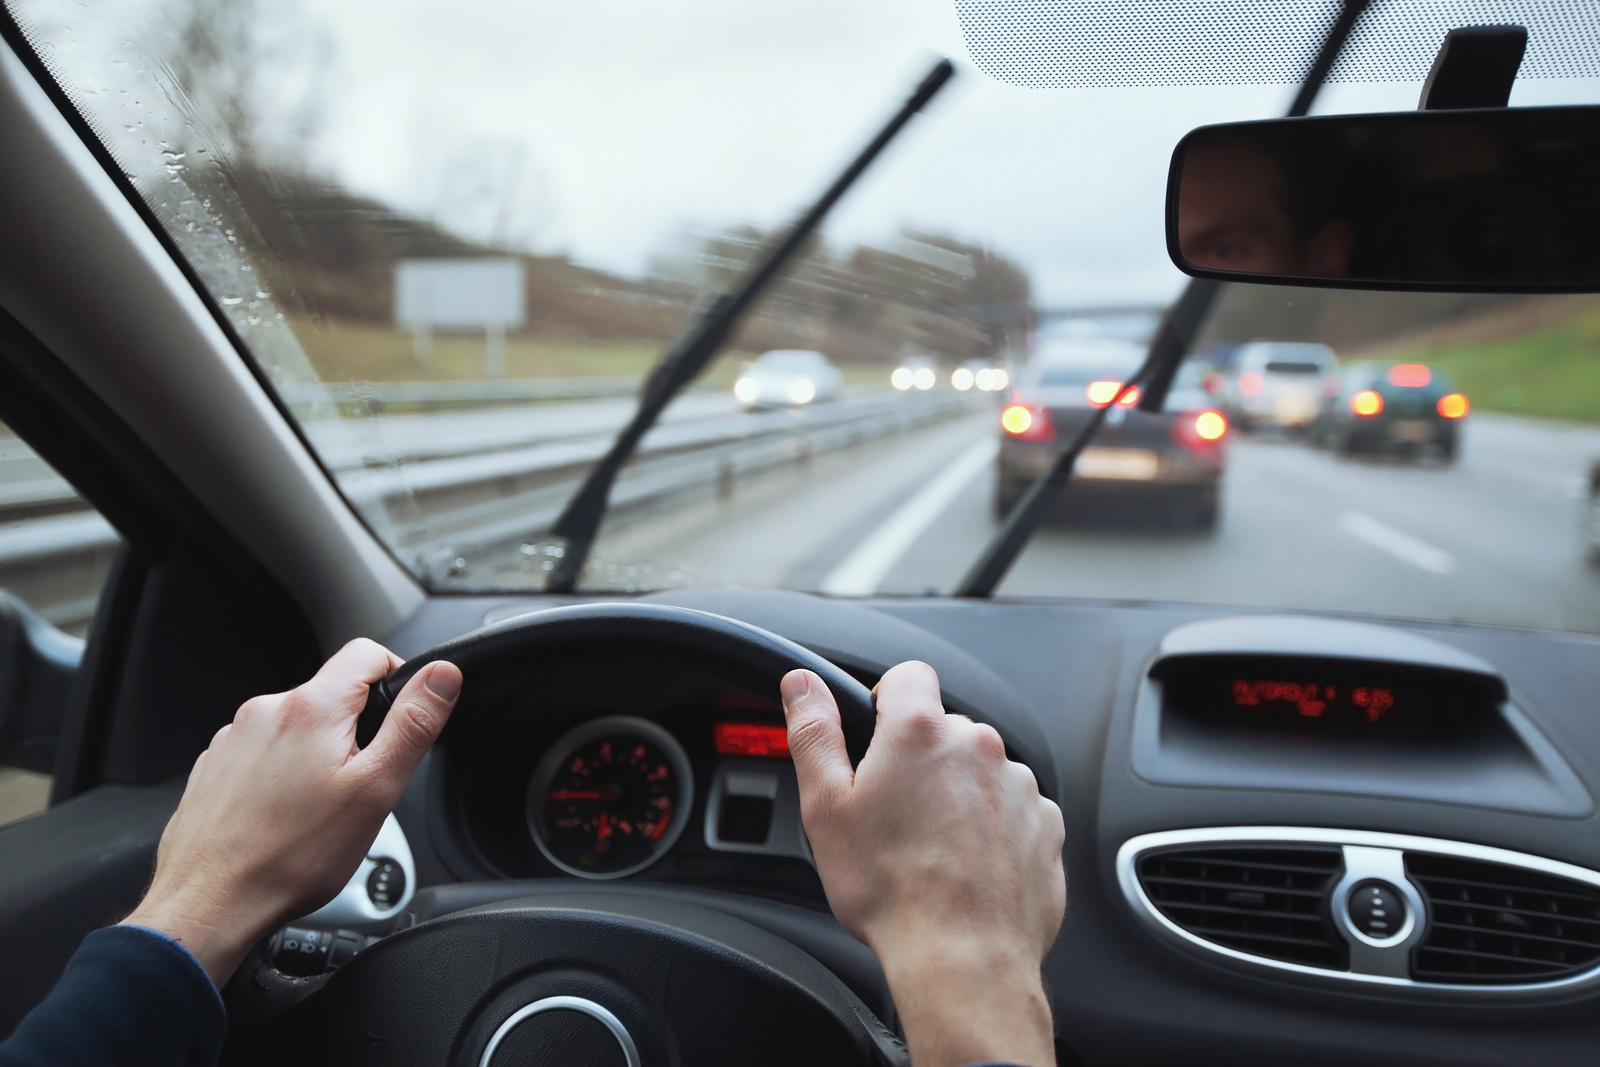 5 Things to Do When Test-Driving a Used Car